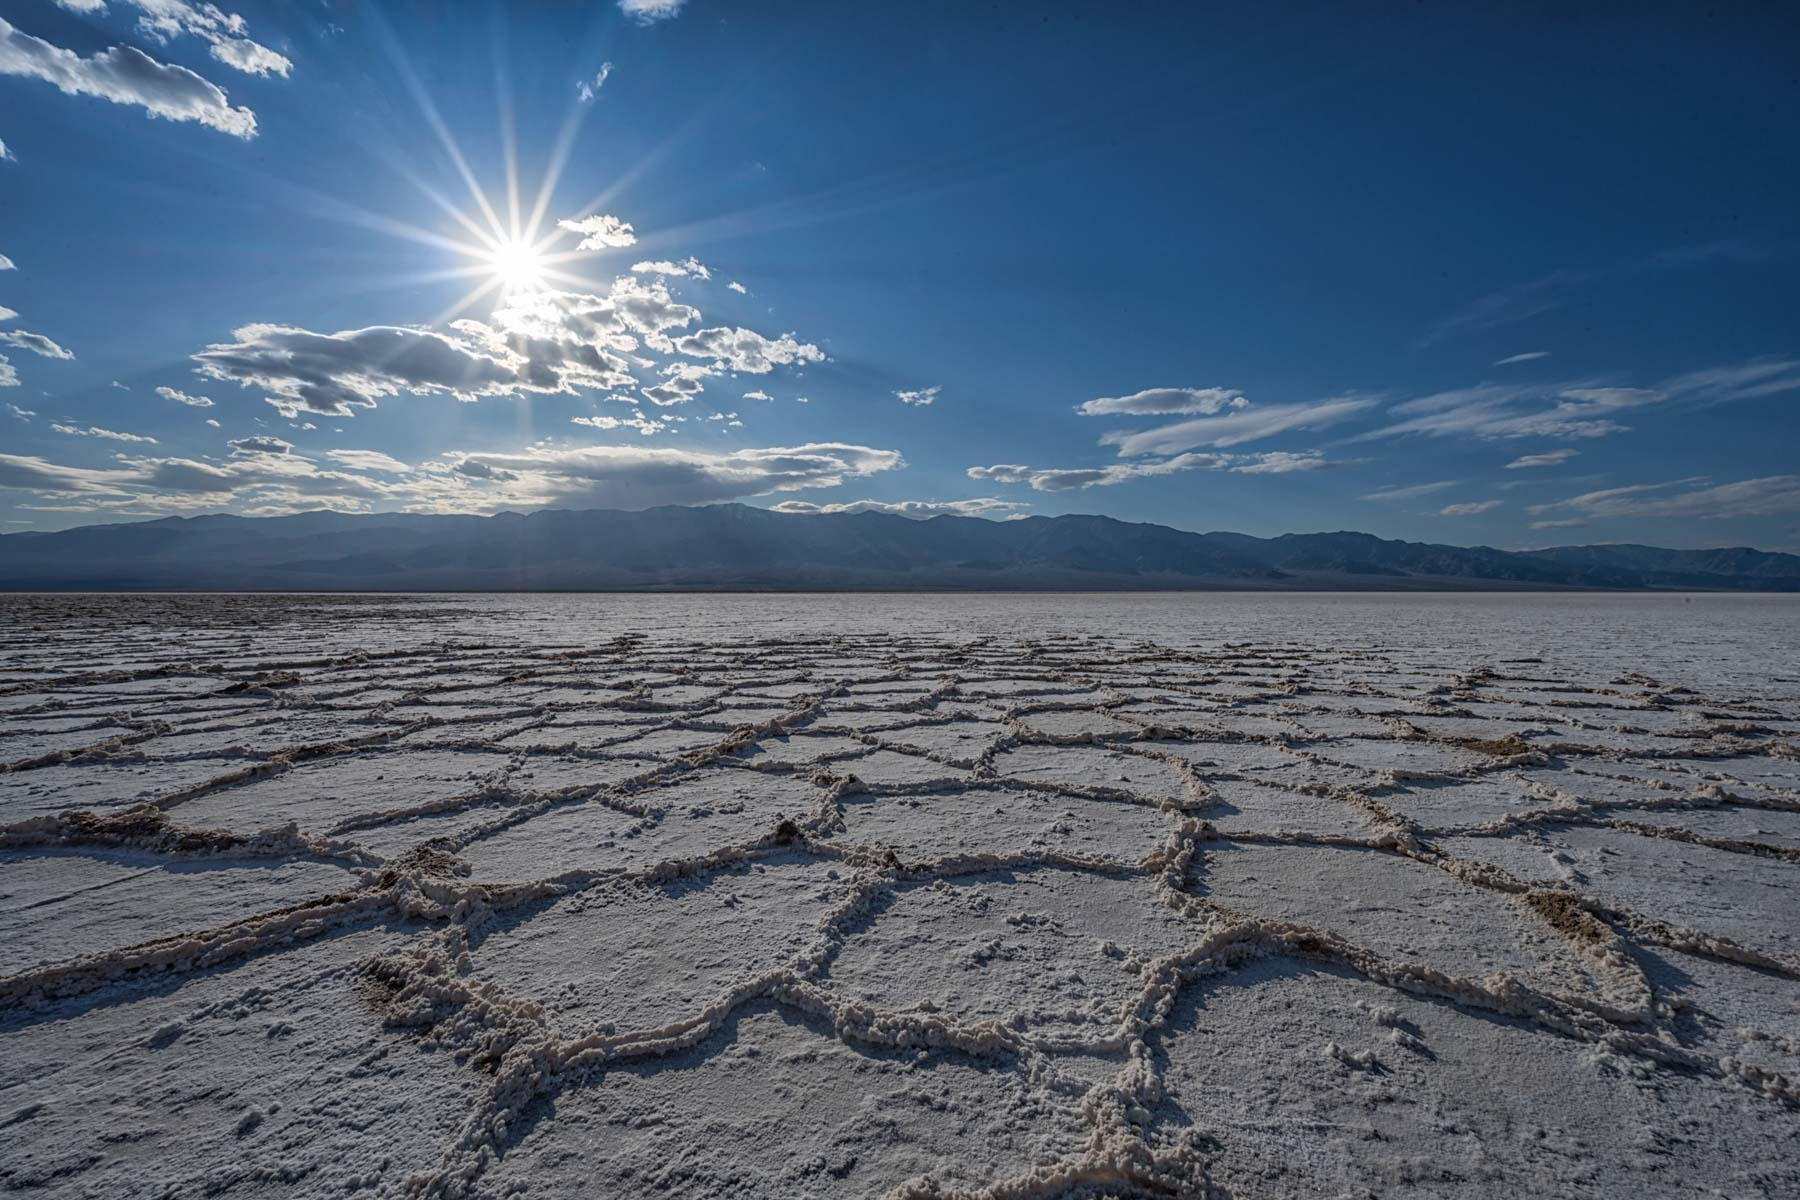 Badwater Salt Flats in Death Valley National Park, California